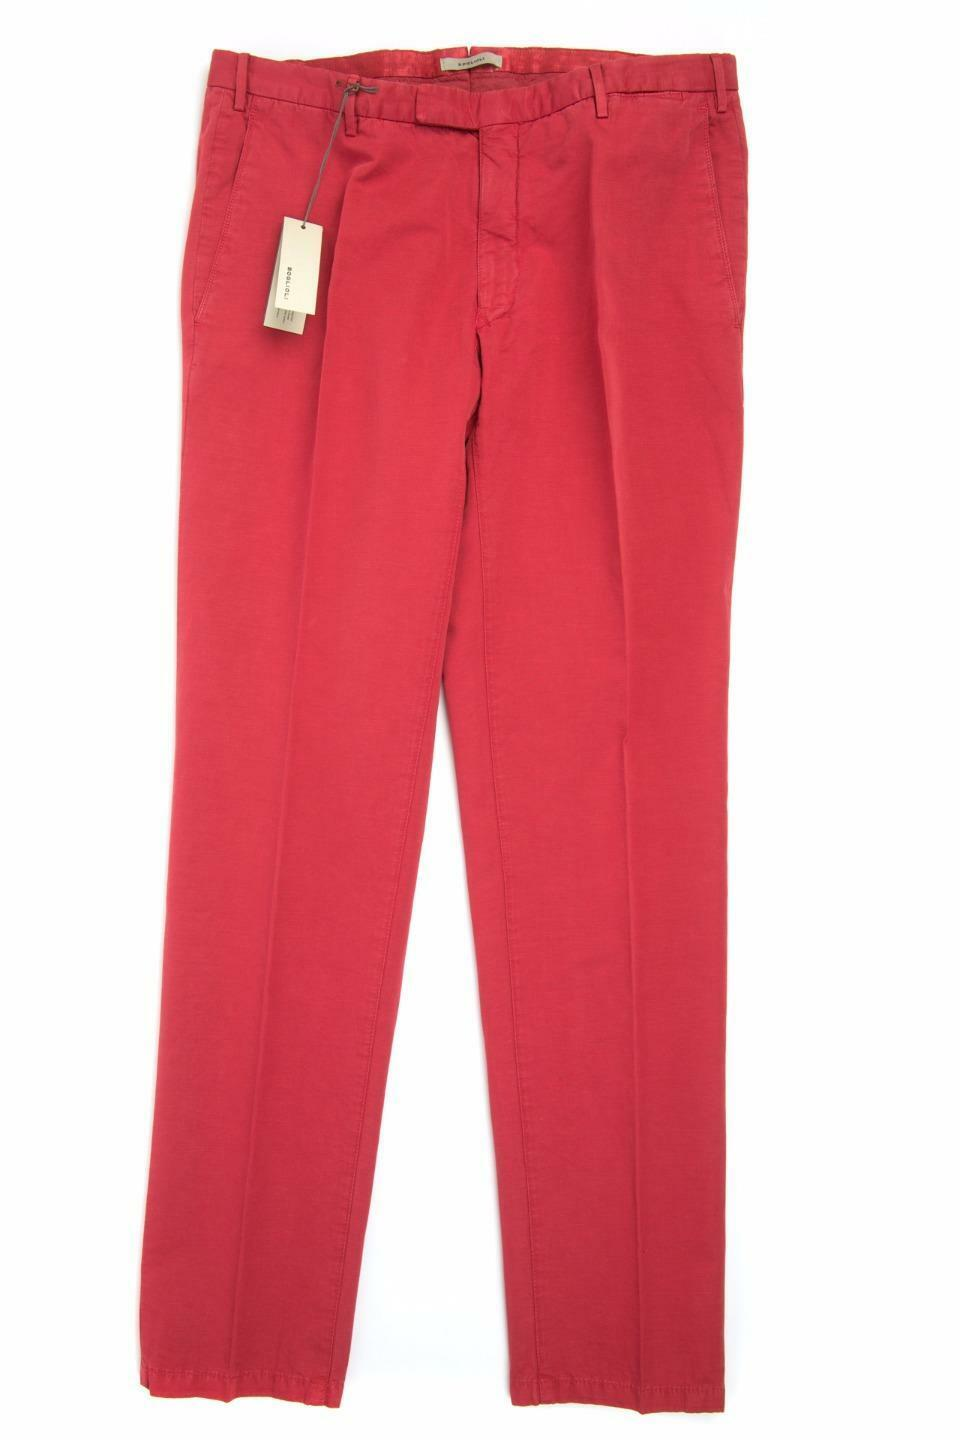 Boglioli NWT  Red Cotton Linen Slim Flat Front Pants Trousers 54 IT 38 US